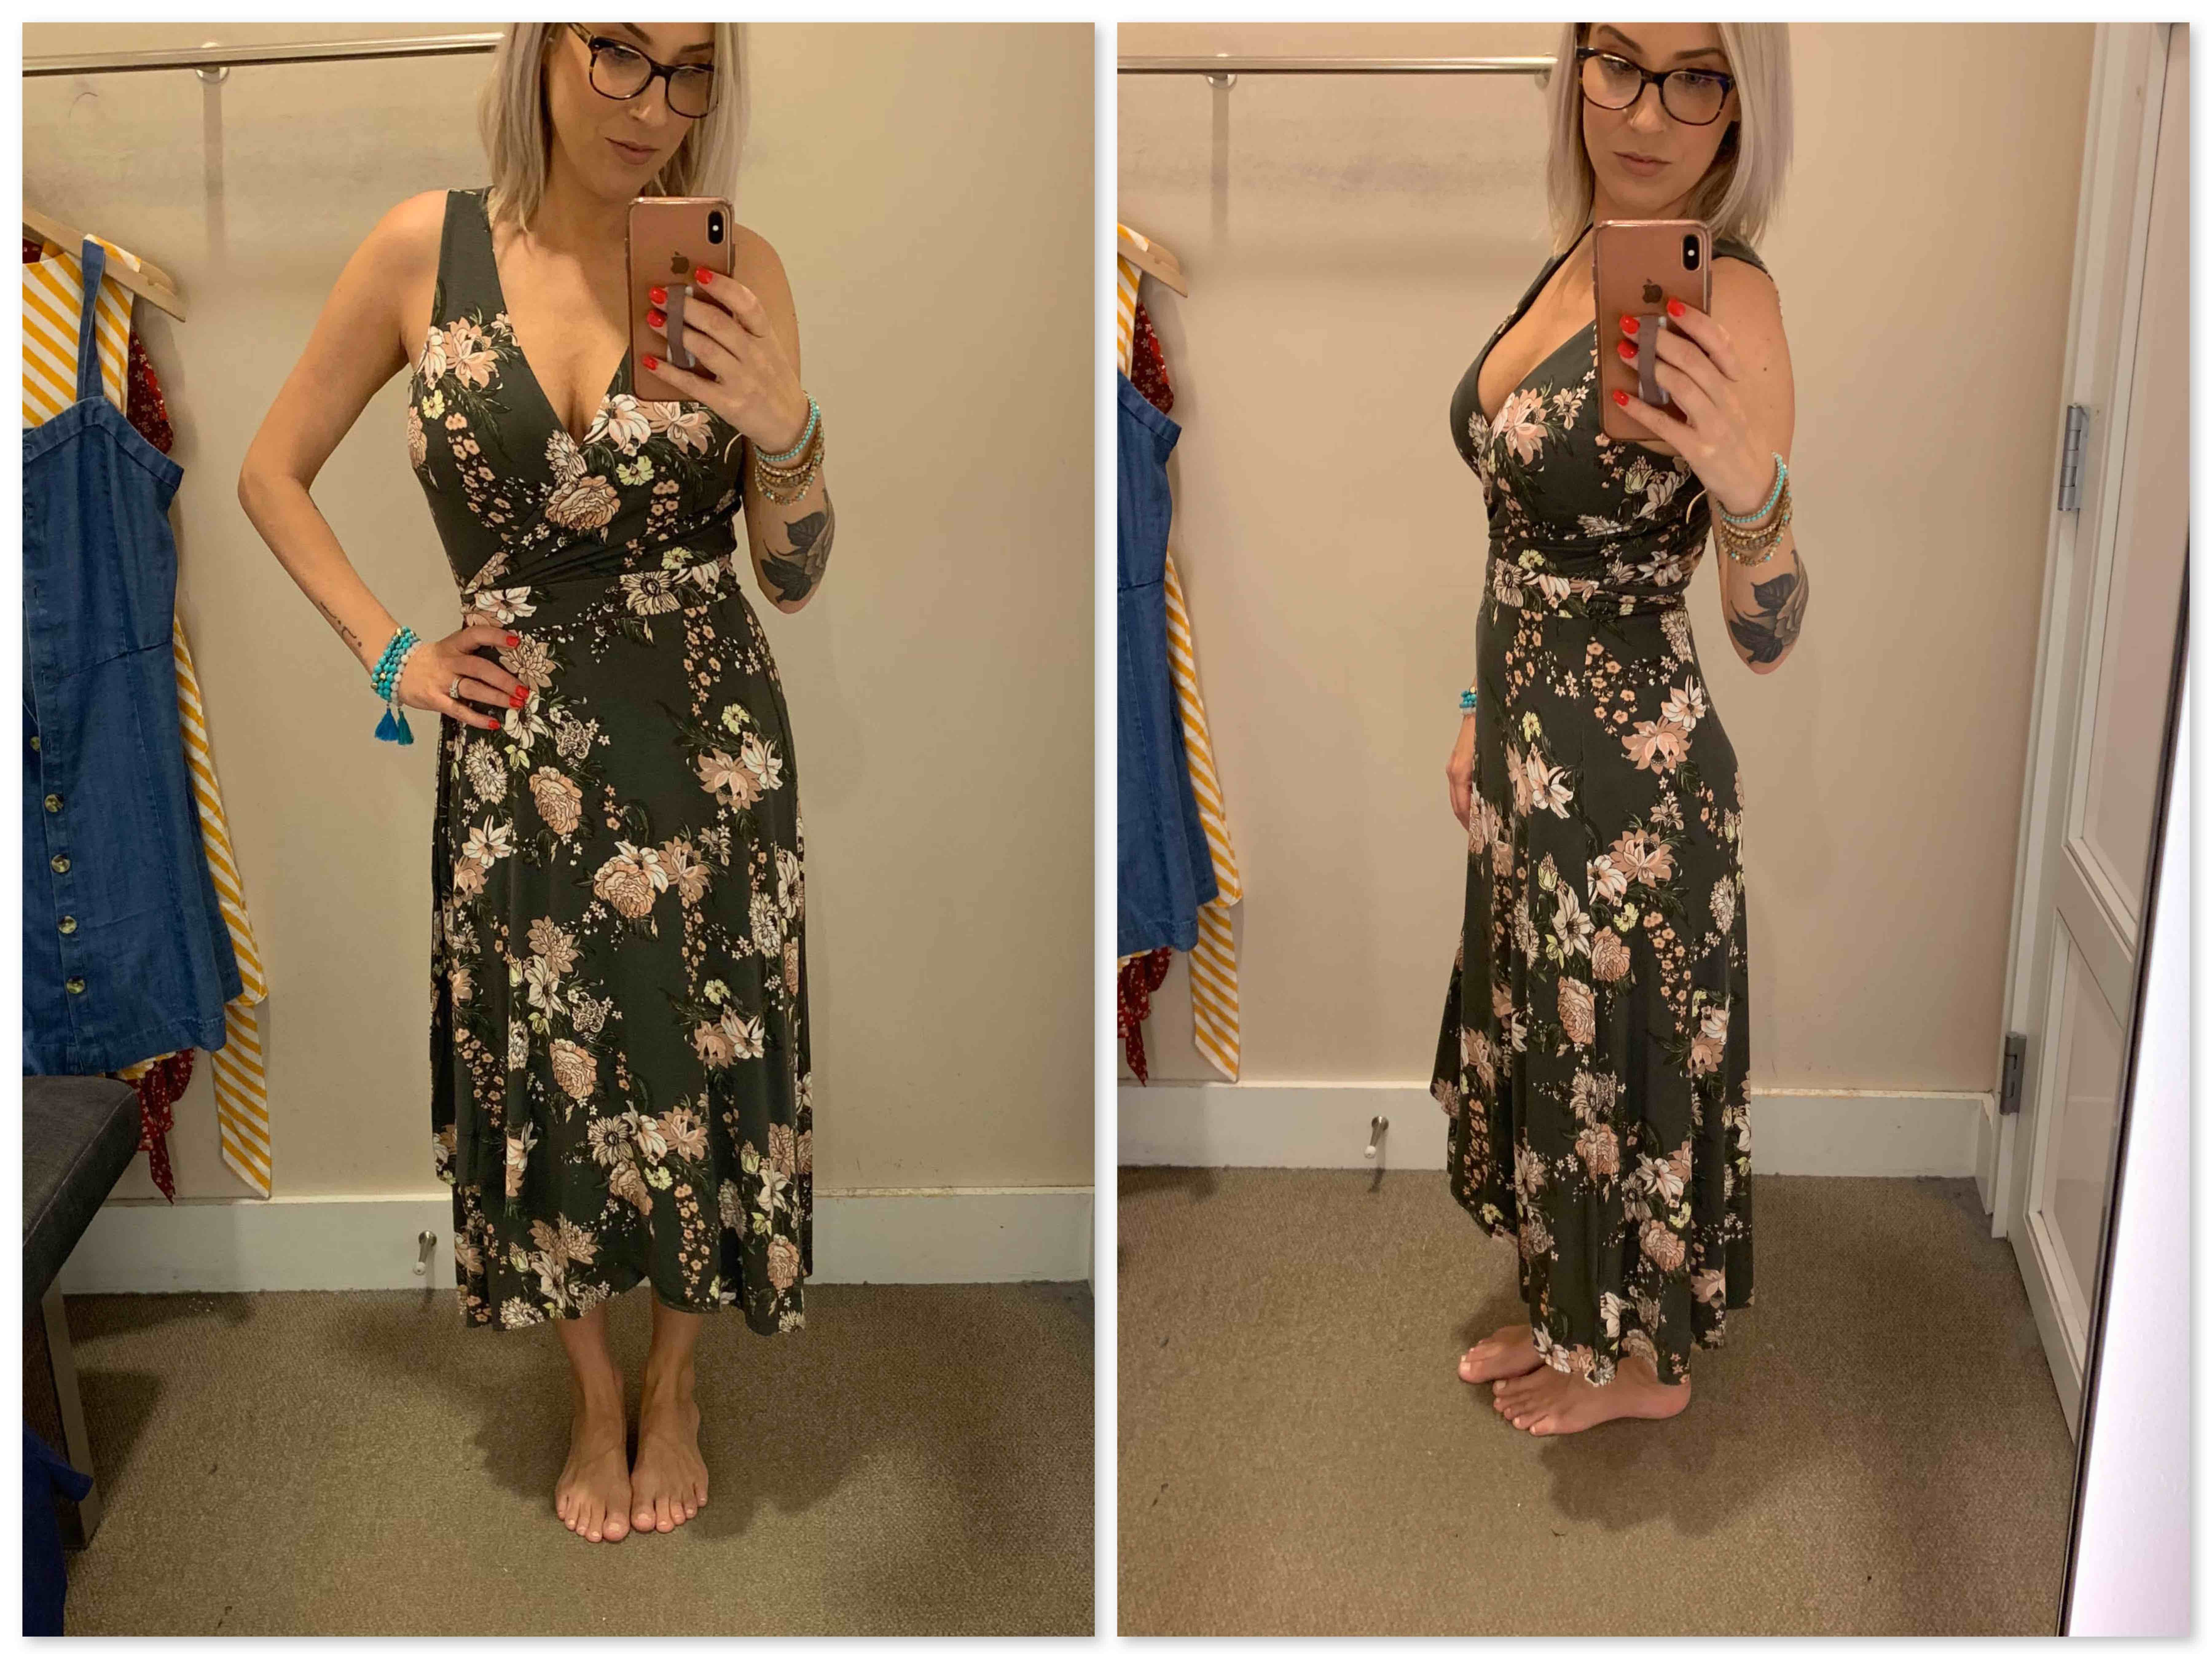 LOFT has summer dresses on lock. We tried flowy dresses, wrap dresses, nursing-friendly dresses & a few for wedding guests. #MirrorSelfies, right here.